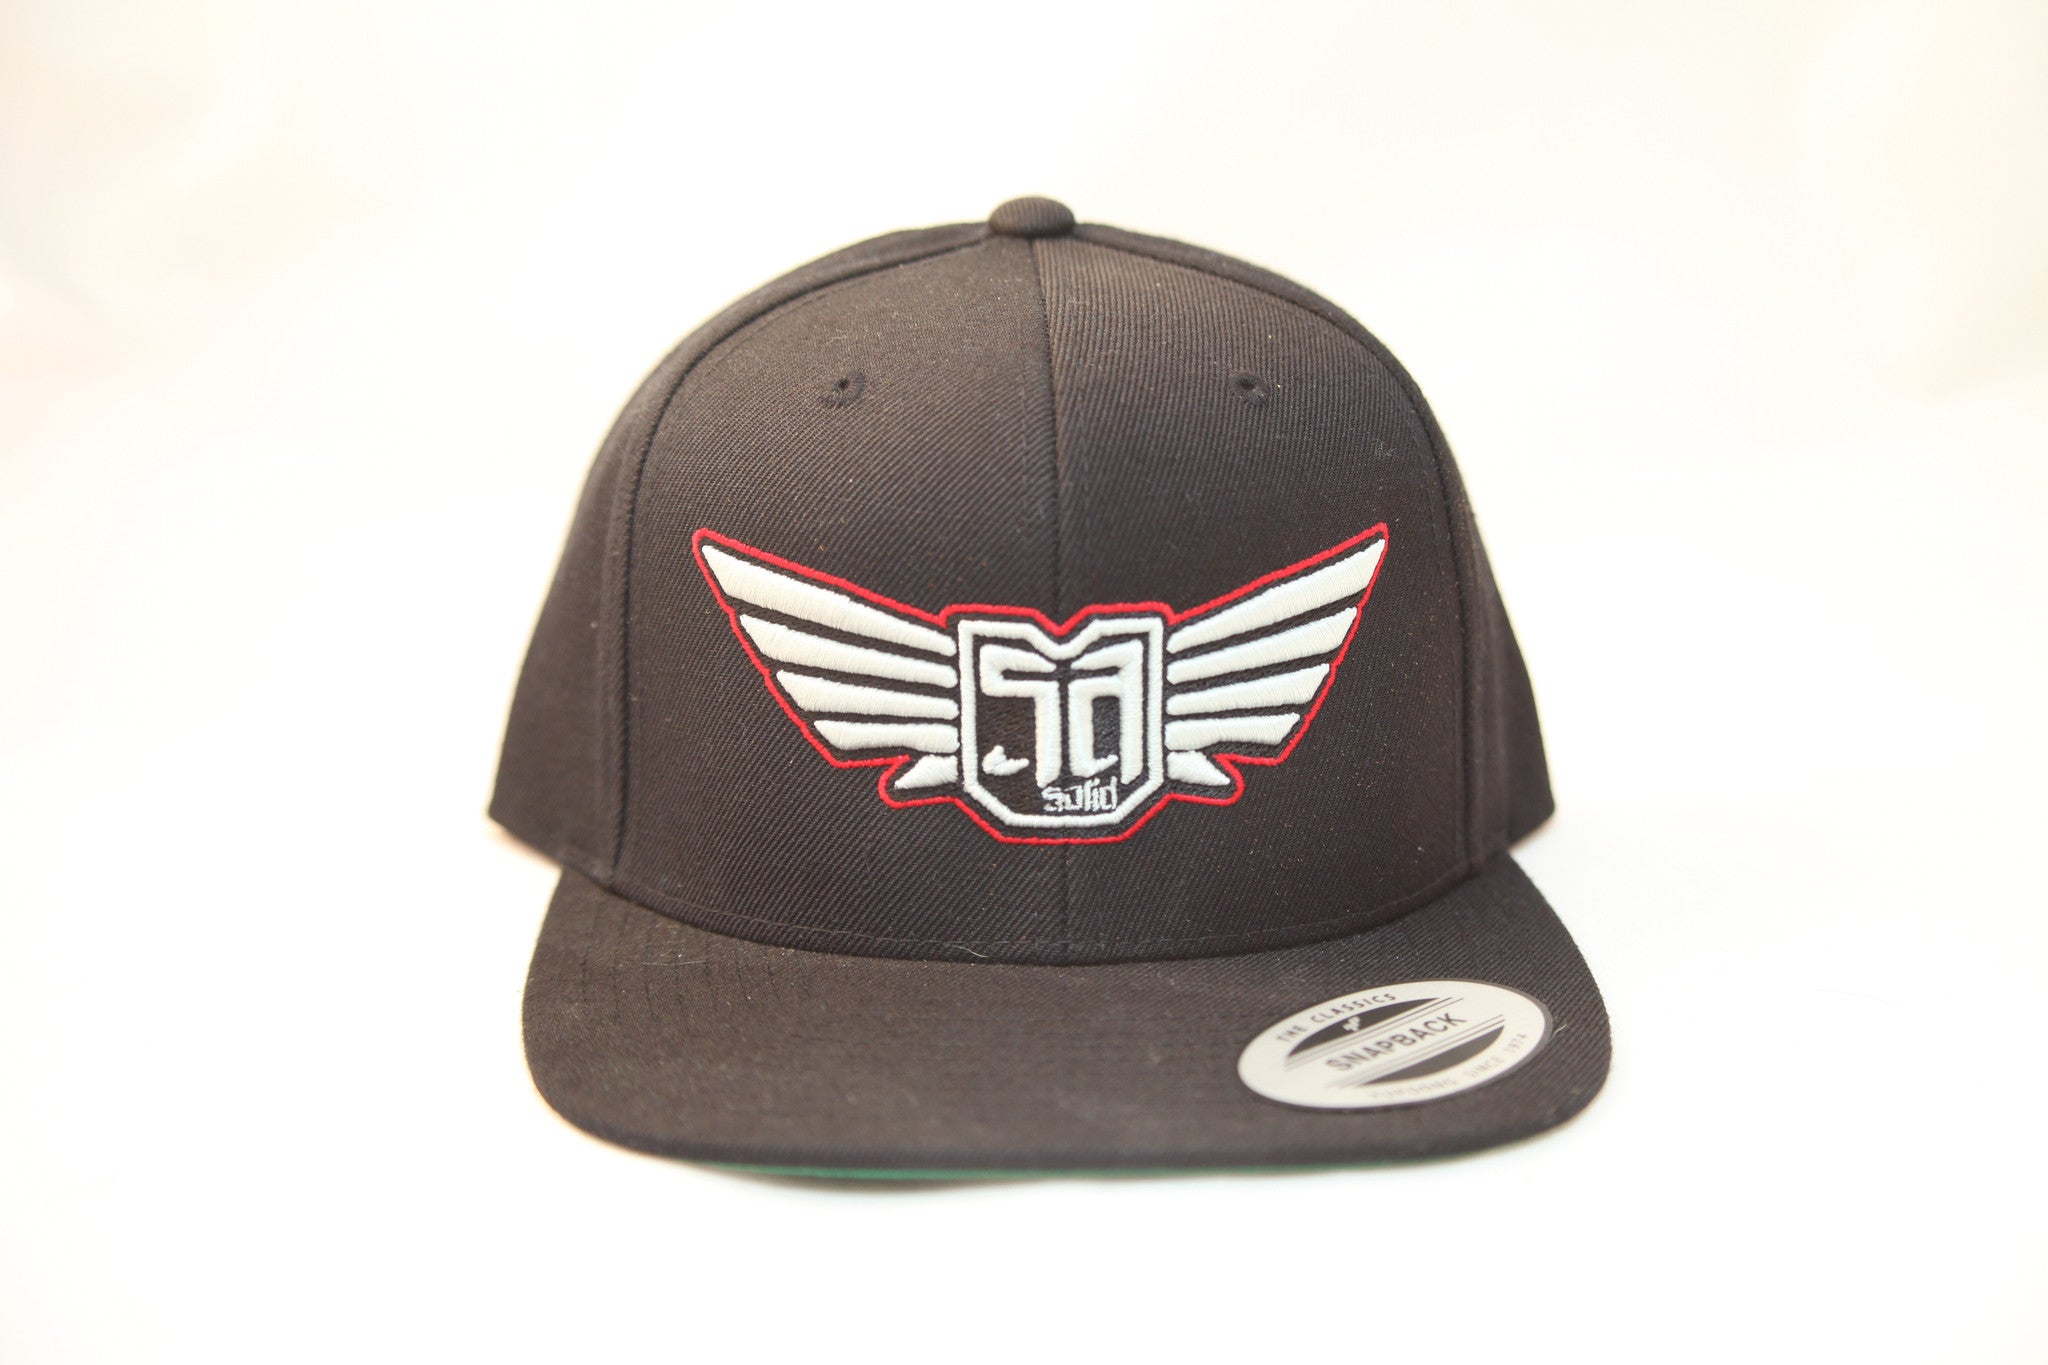 AV8 - FLEXFIT SNAP BACK HAT - BLACK - WHT / BLK / RED LOGO